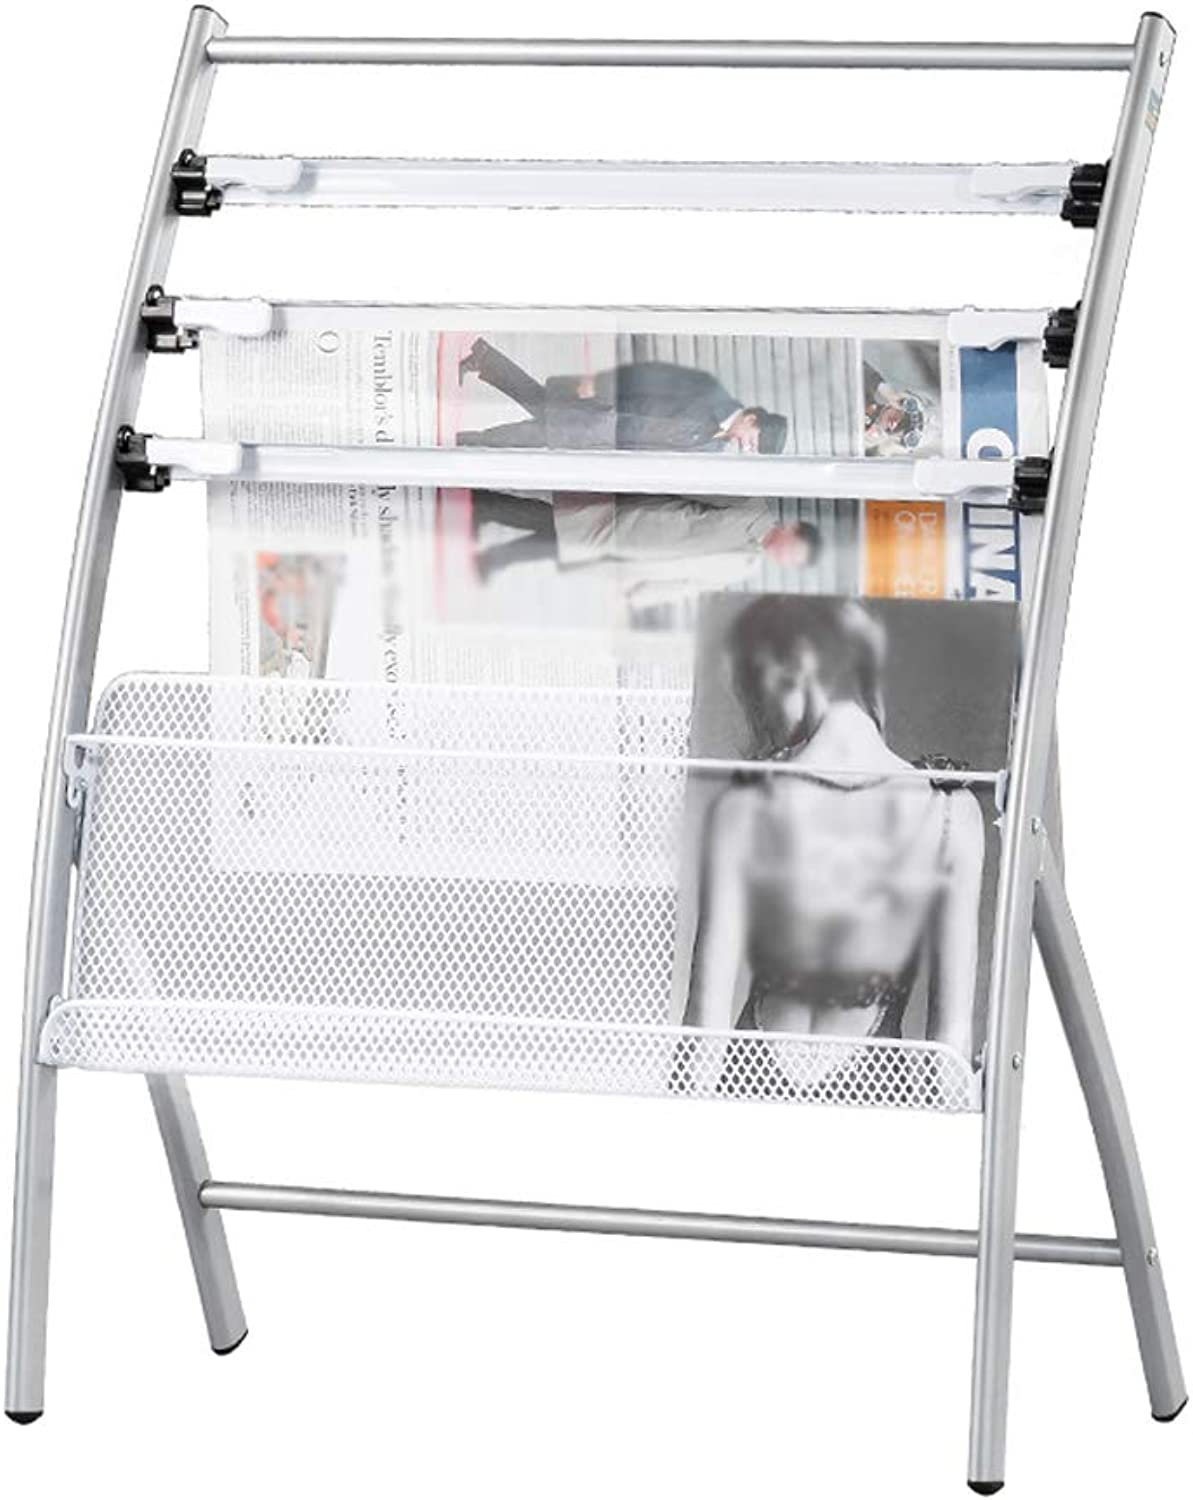 Newspaper Stand Aluminum Alloy Publicity Materials Floor Display Magazine Rack Lightweight and Portable (Size   63x36x81cm)